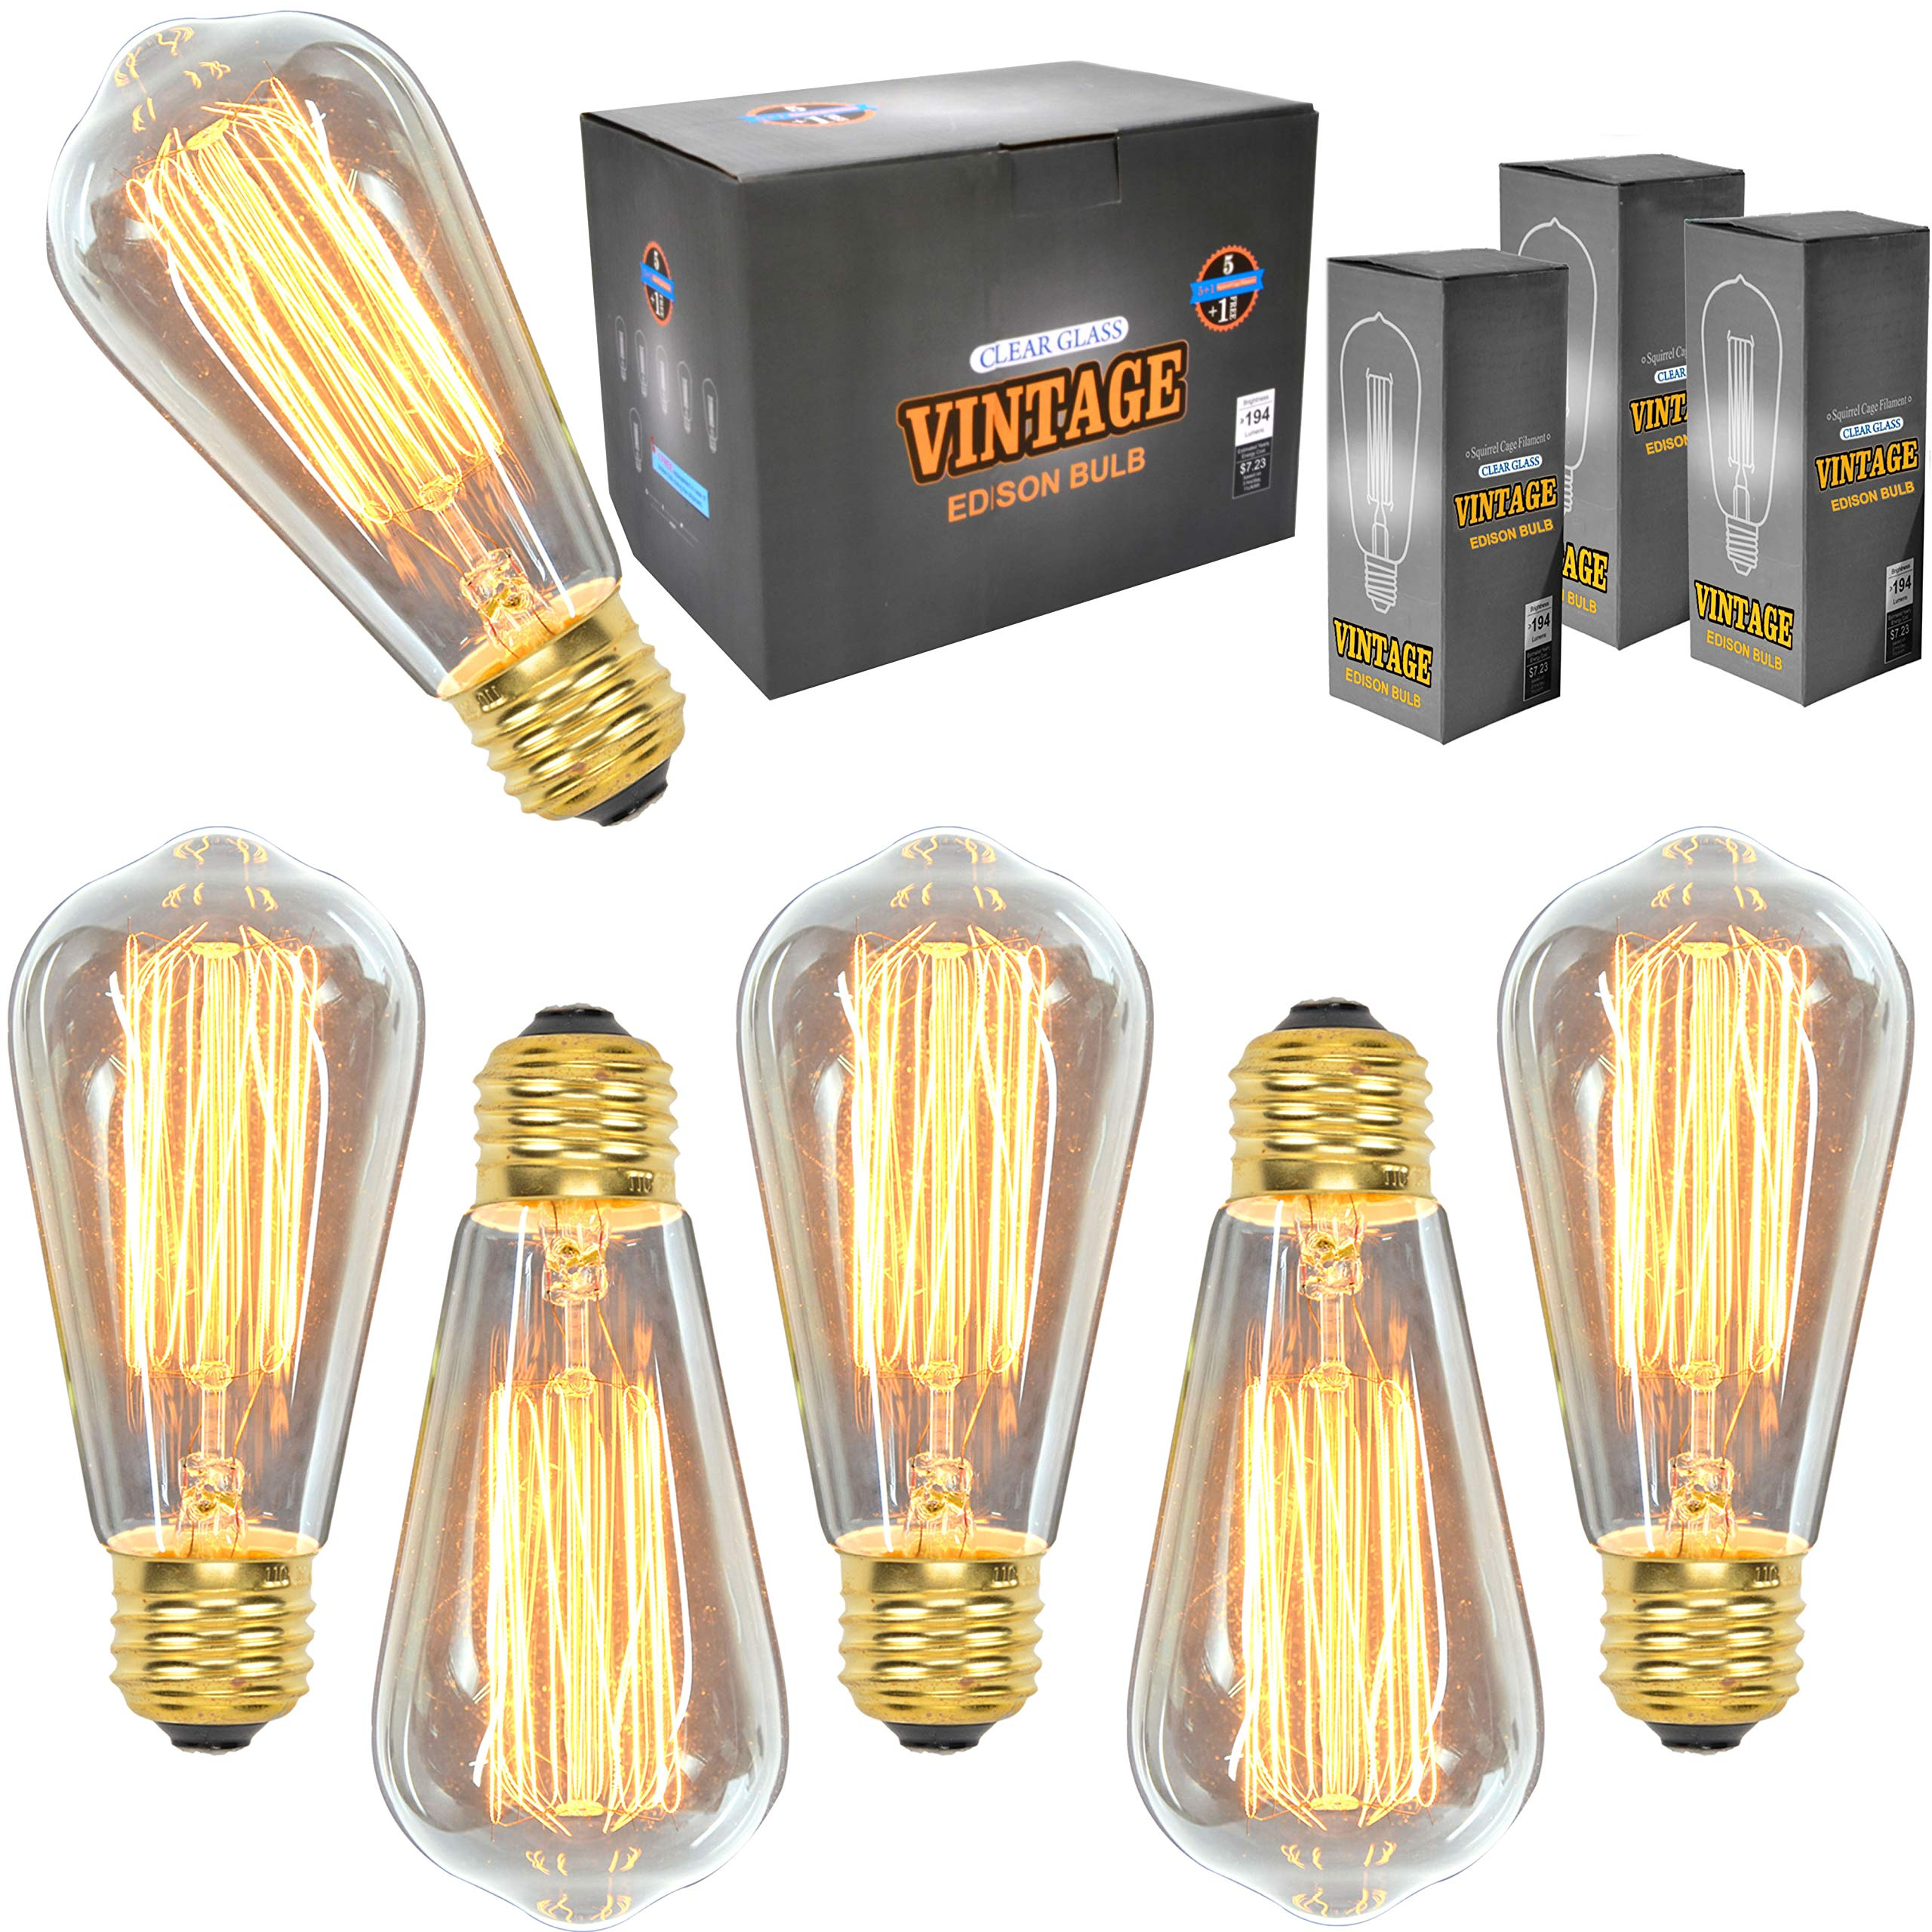 Vintage Edison Light Bulbs (6 Pack), 60W, ST64, E26, Squirrel Cage, Dimmable,Clear Glass, Industrial Vintage Incandescent Bulbs by Youngever (Image #1)